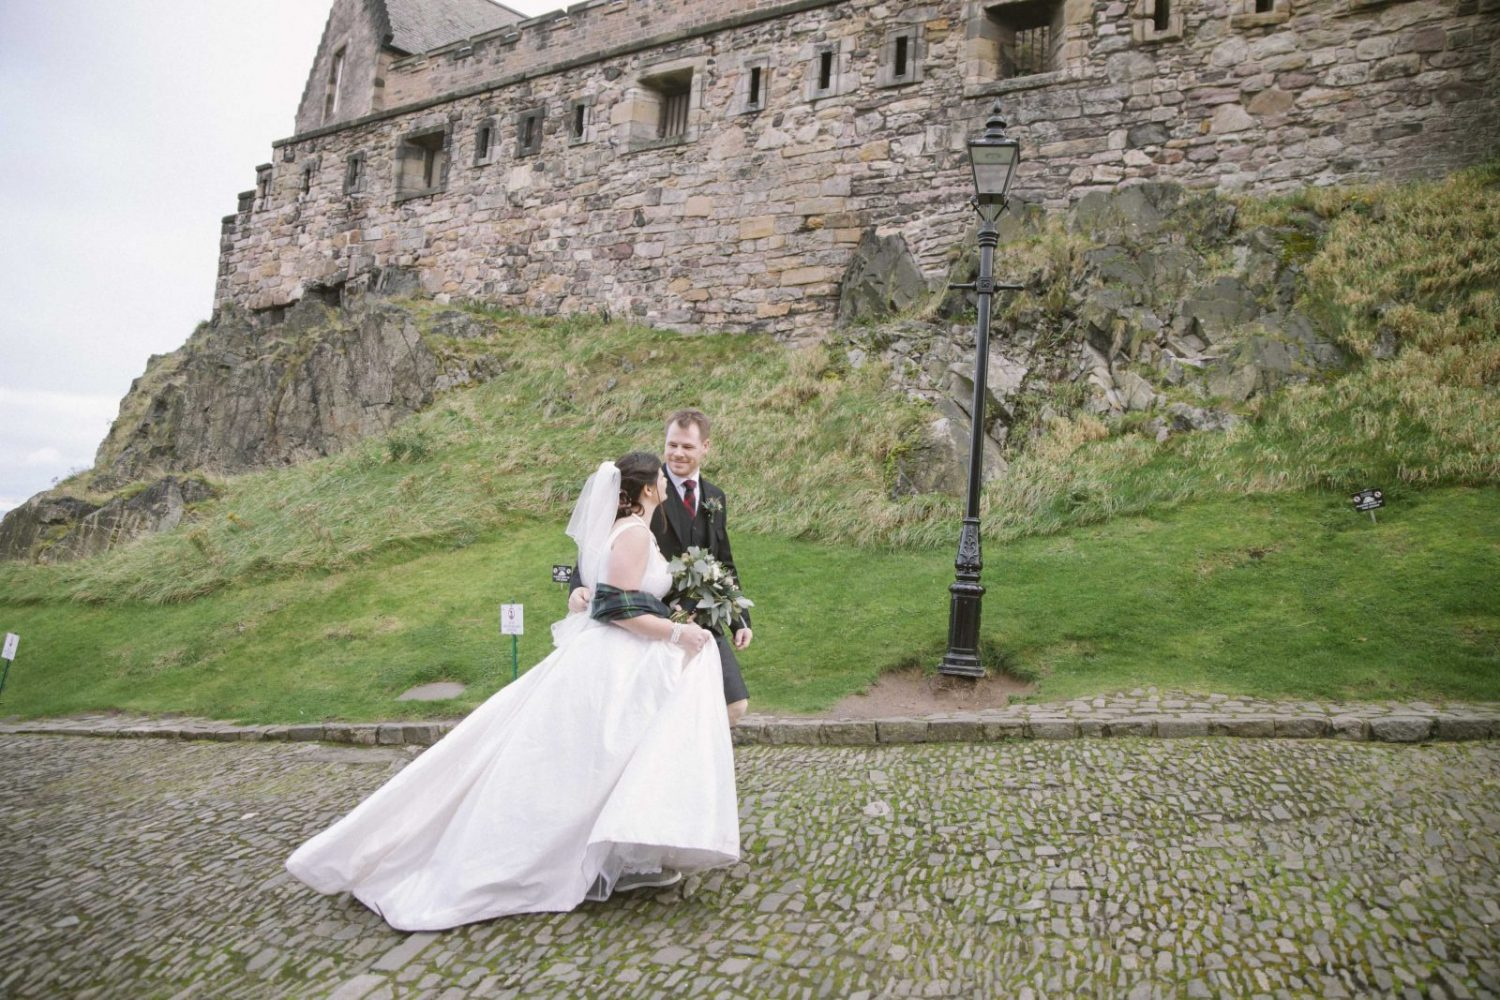 Edinburg Castle Wedding Photography | Scottish Destination Wedding | St Margaret's Chapel Elopement | intimate wedding photography by Ceranna | Edinburgh Wedding Photographer